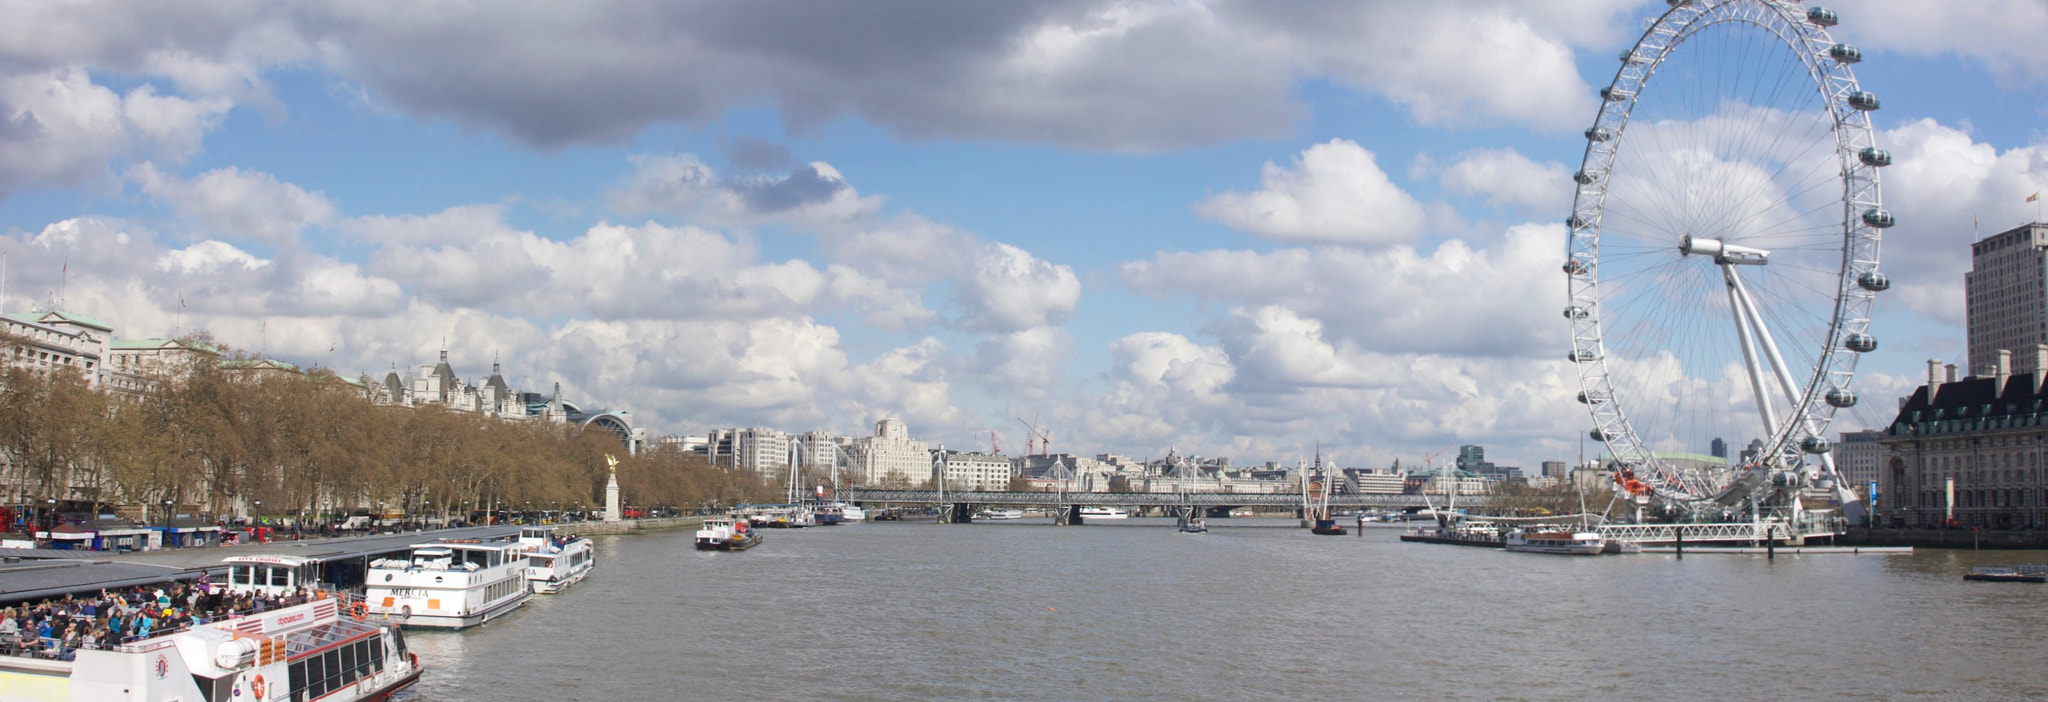 Photograph Pano Thames and London Eye by Ron Kaplan on 500px